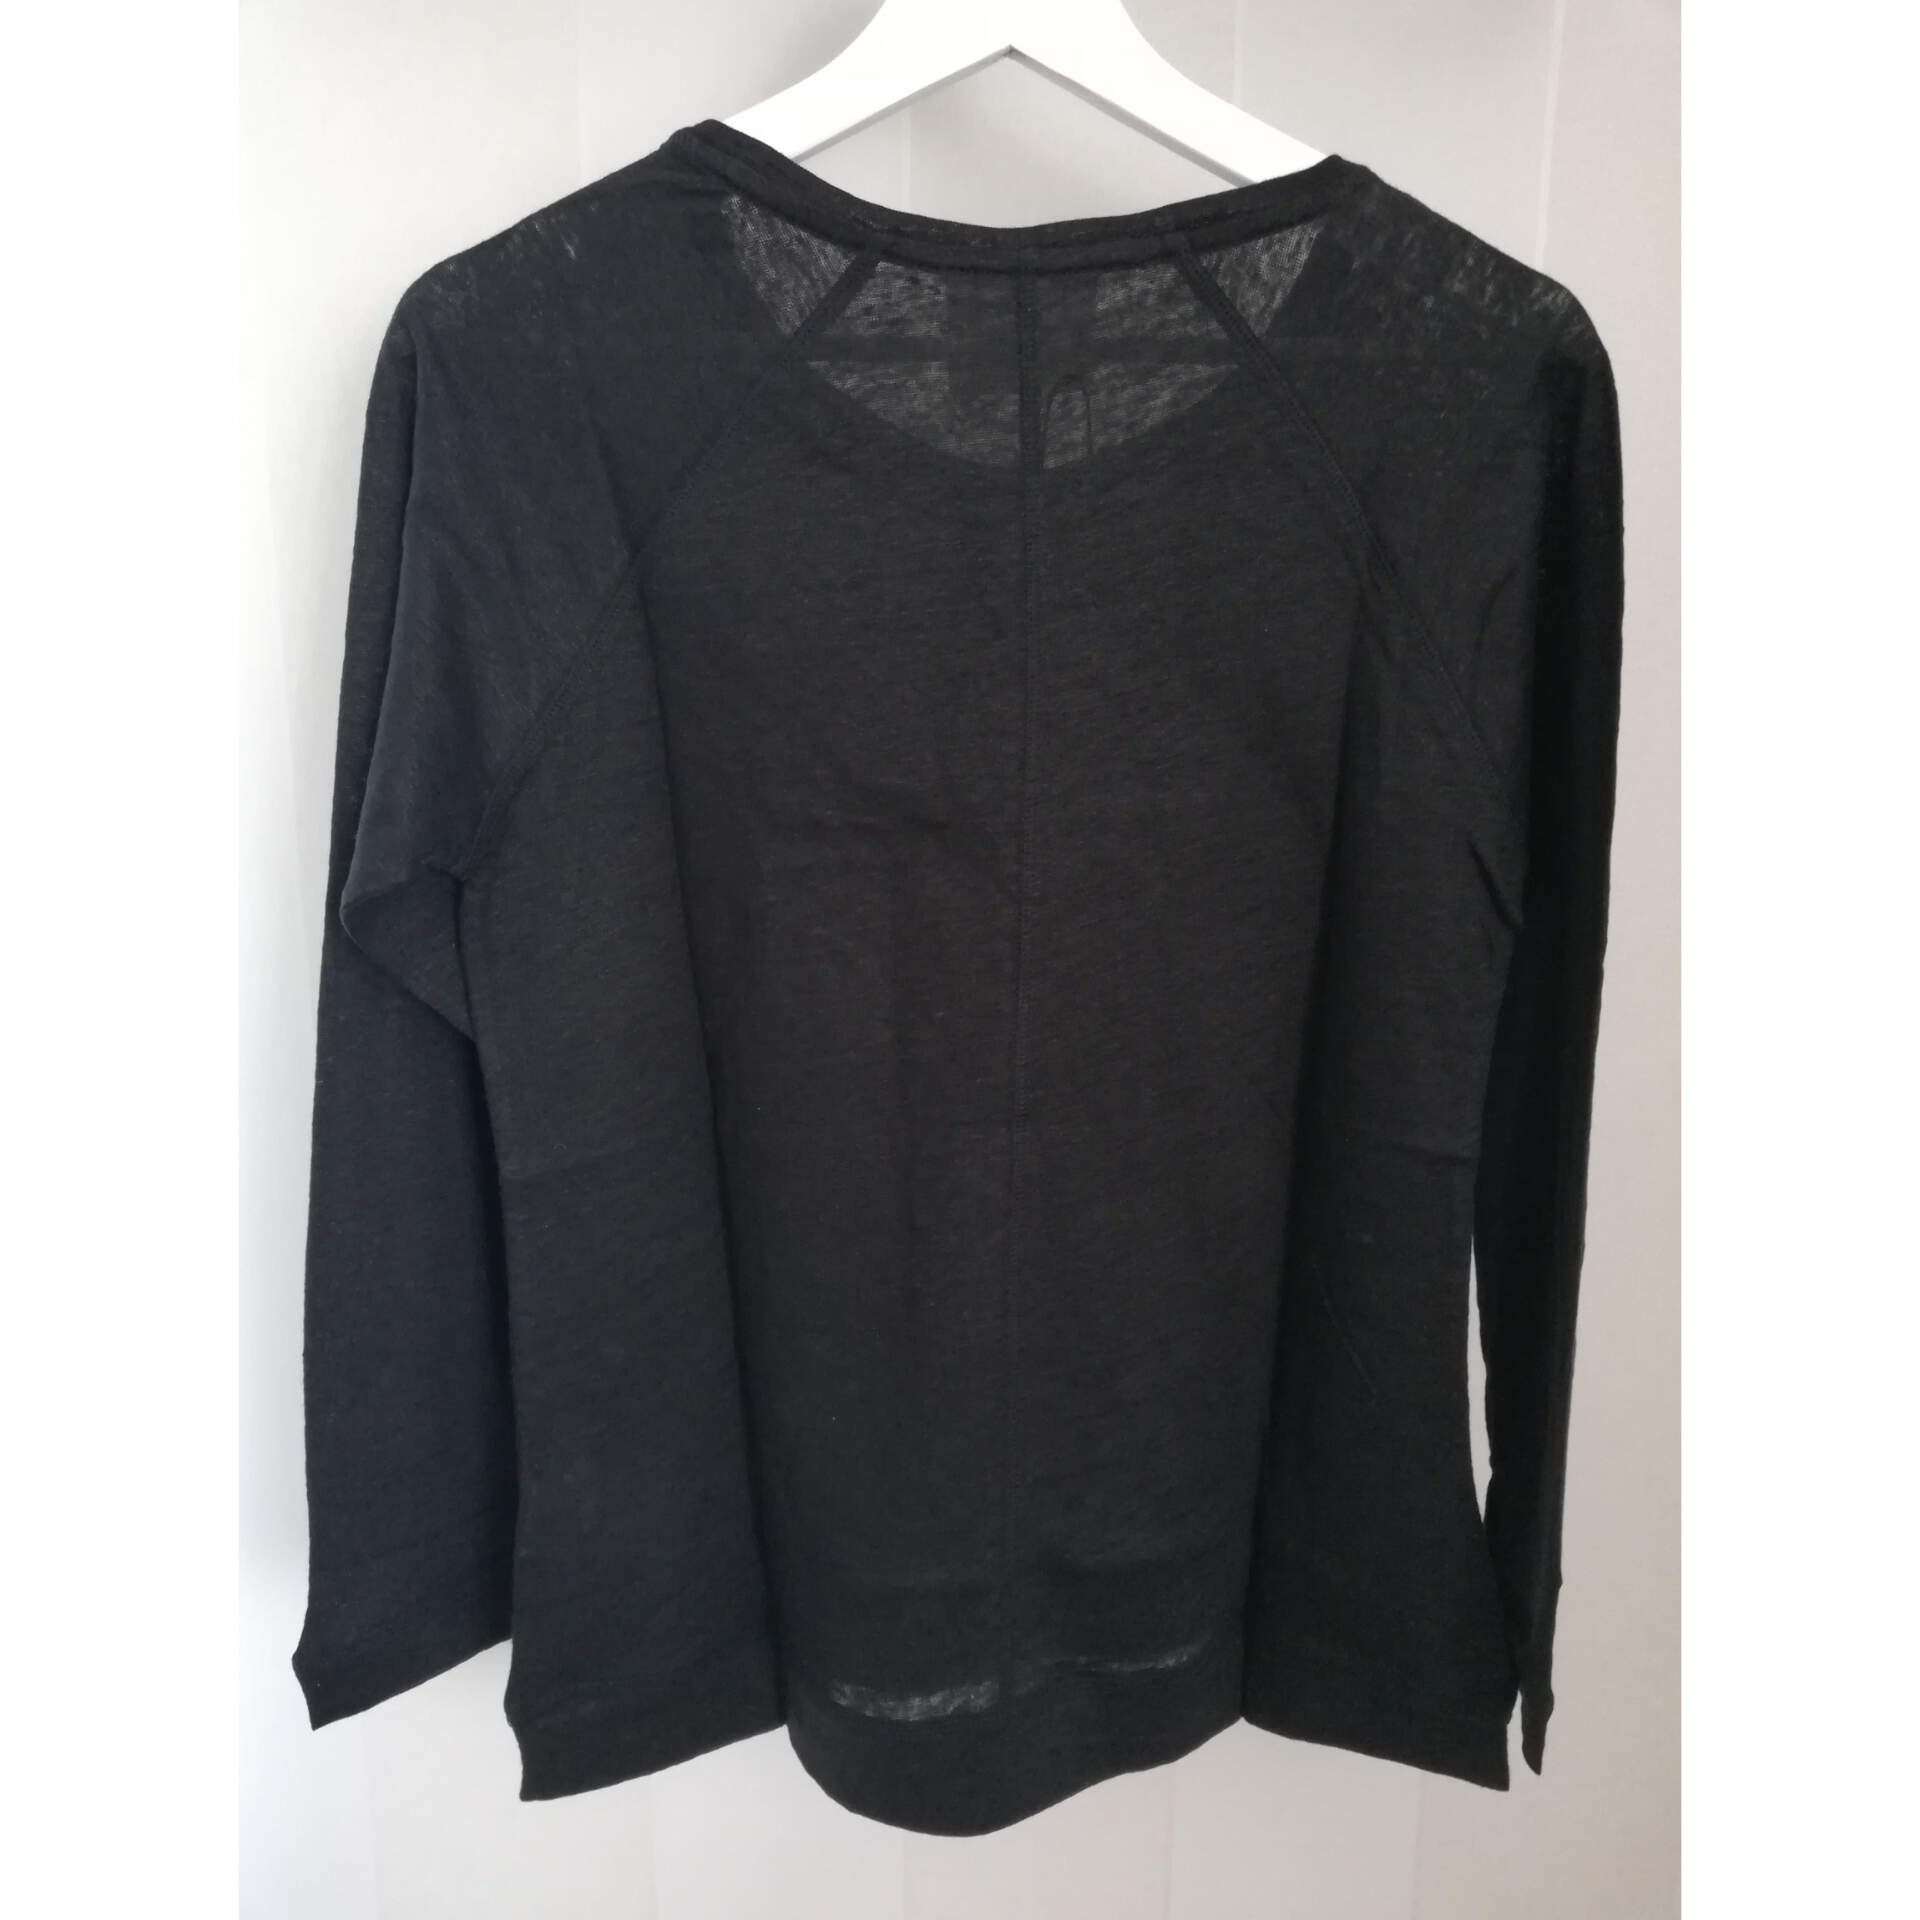 GARDEL BY MOORE Simone Top Black